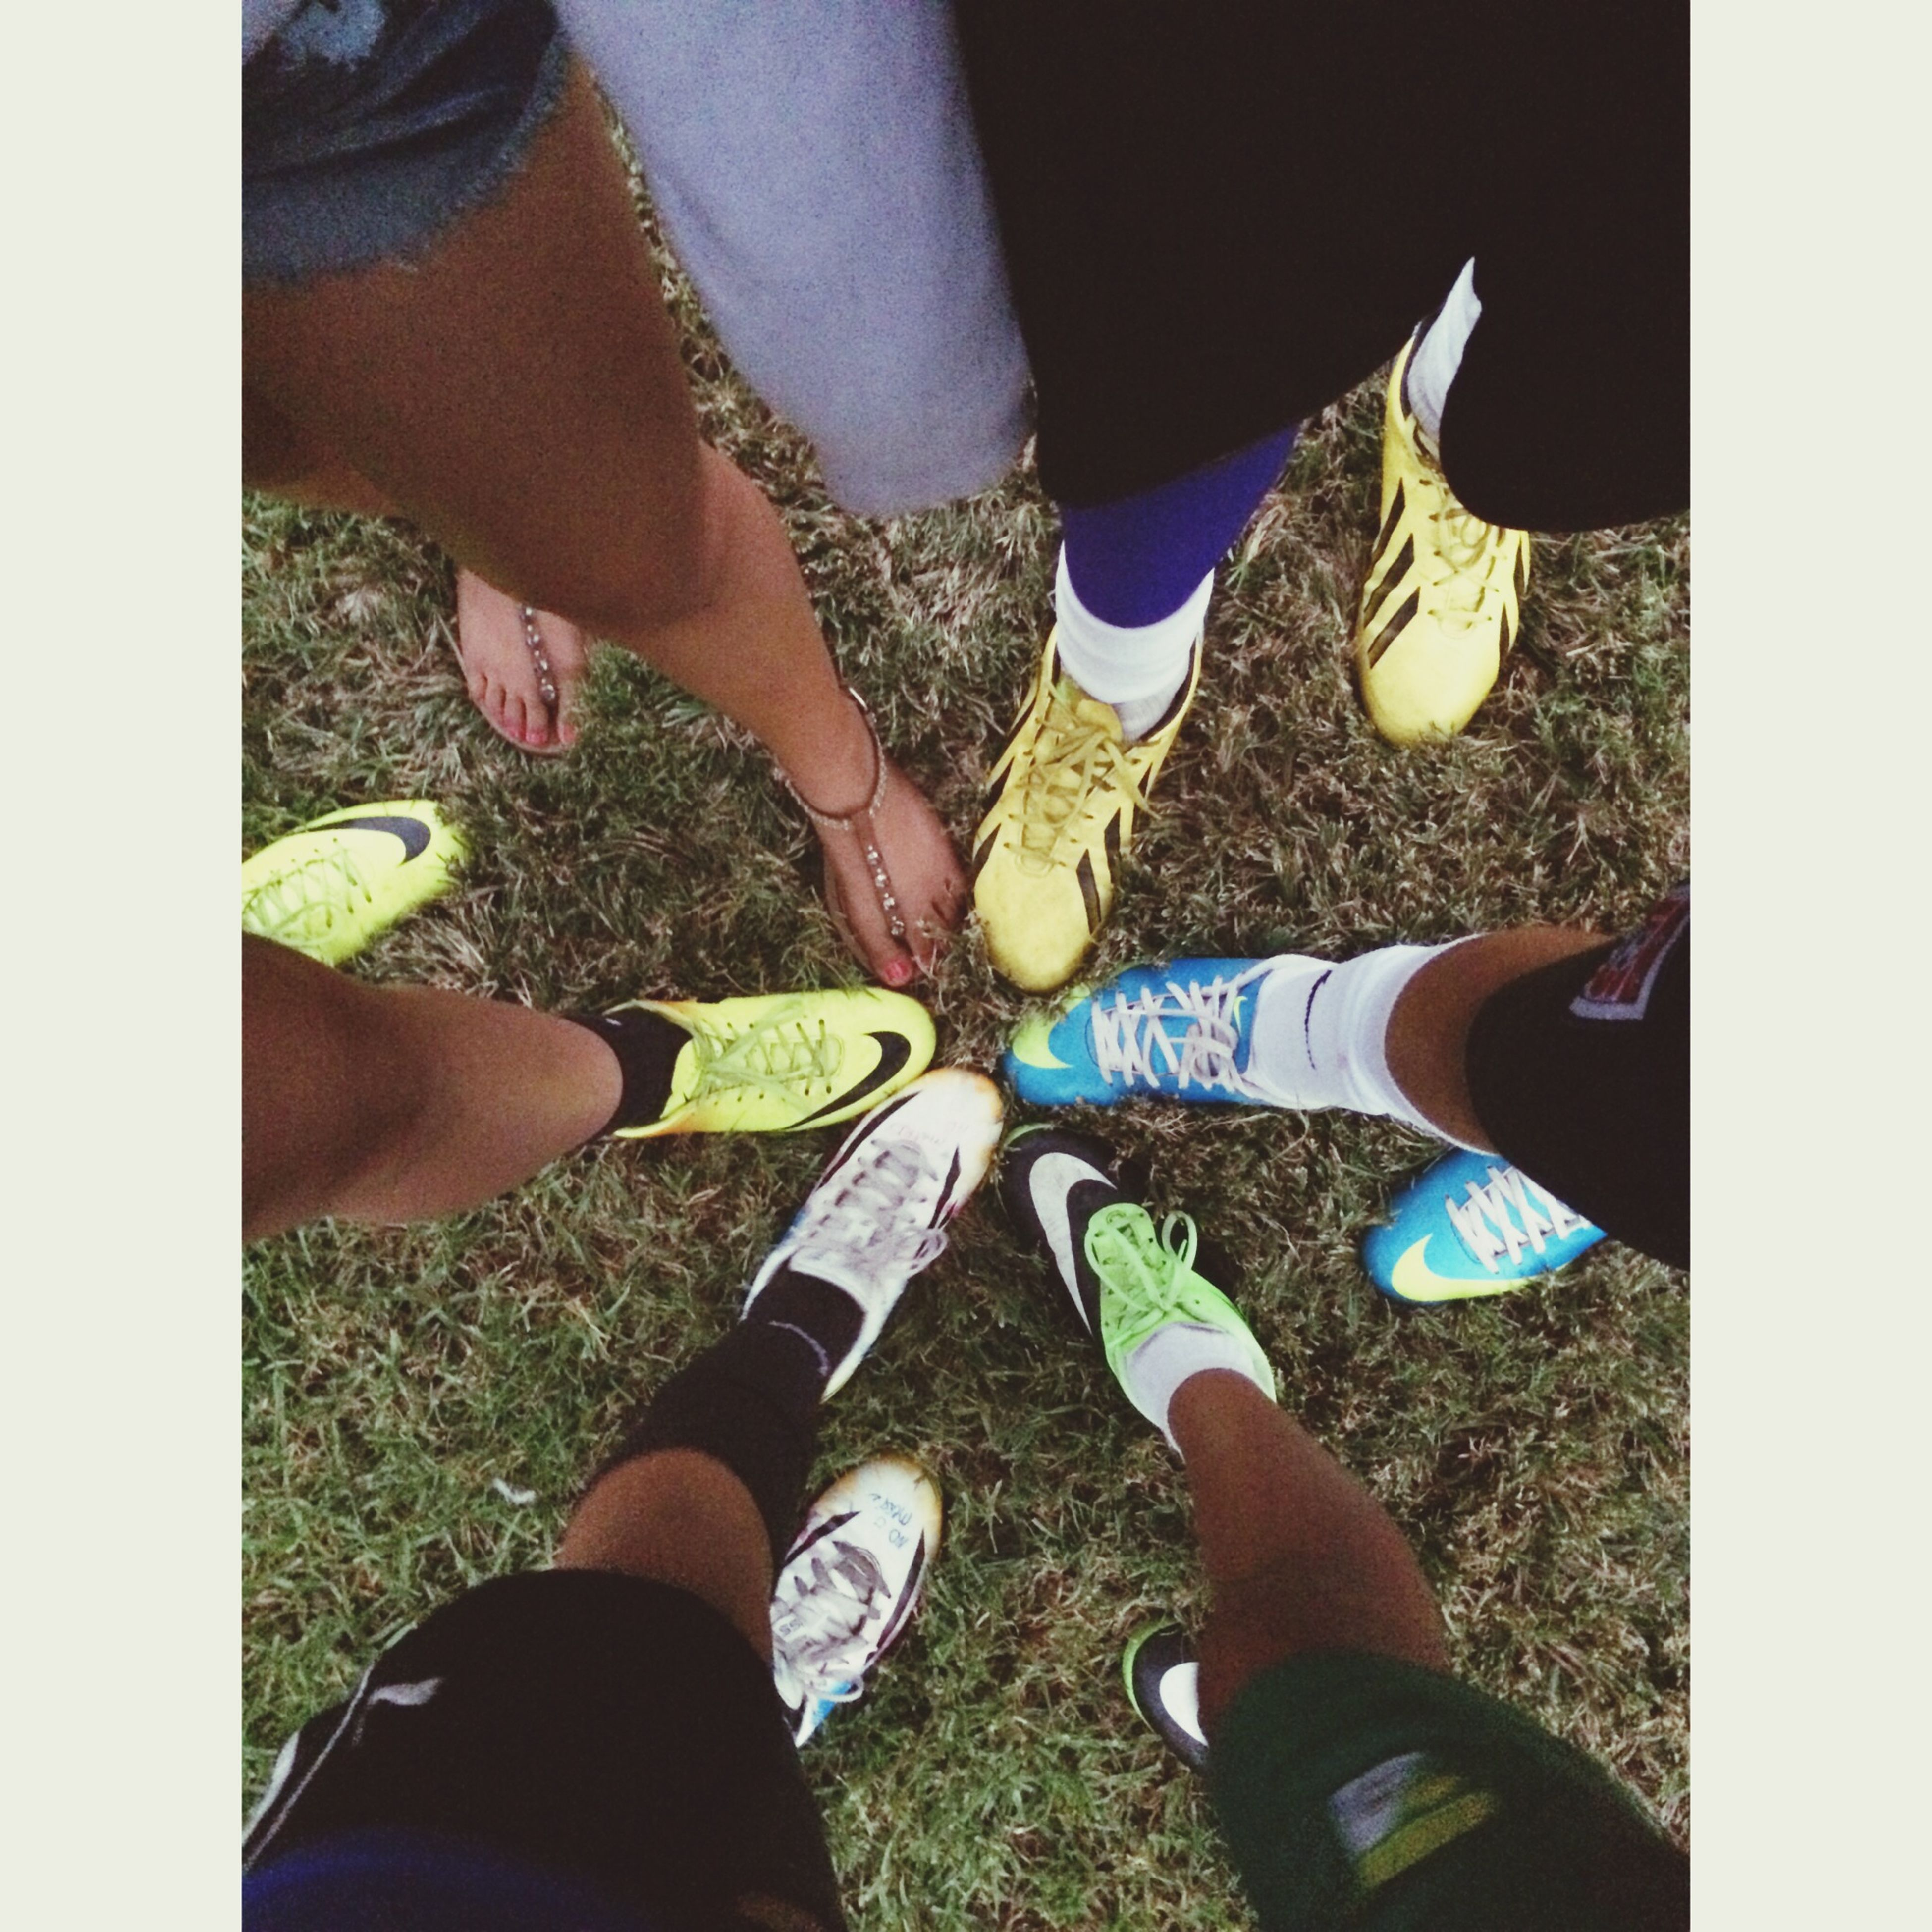 low section, person, lifestyles, personal perspective, transfer print, leisure activity, shoe, togetherness, men, human foot, standing, auto post production filter, high angle view, bonding, friendship, footwear